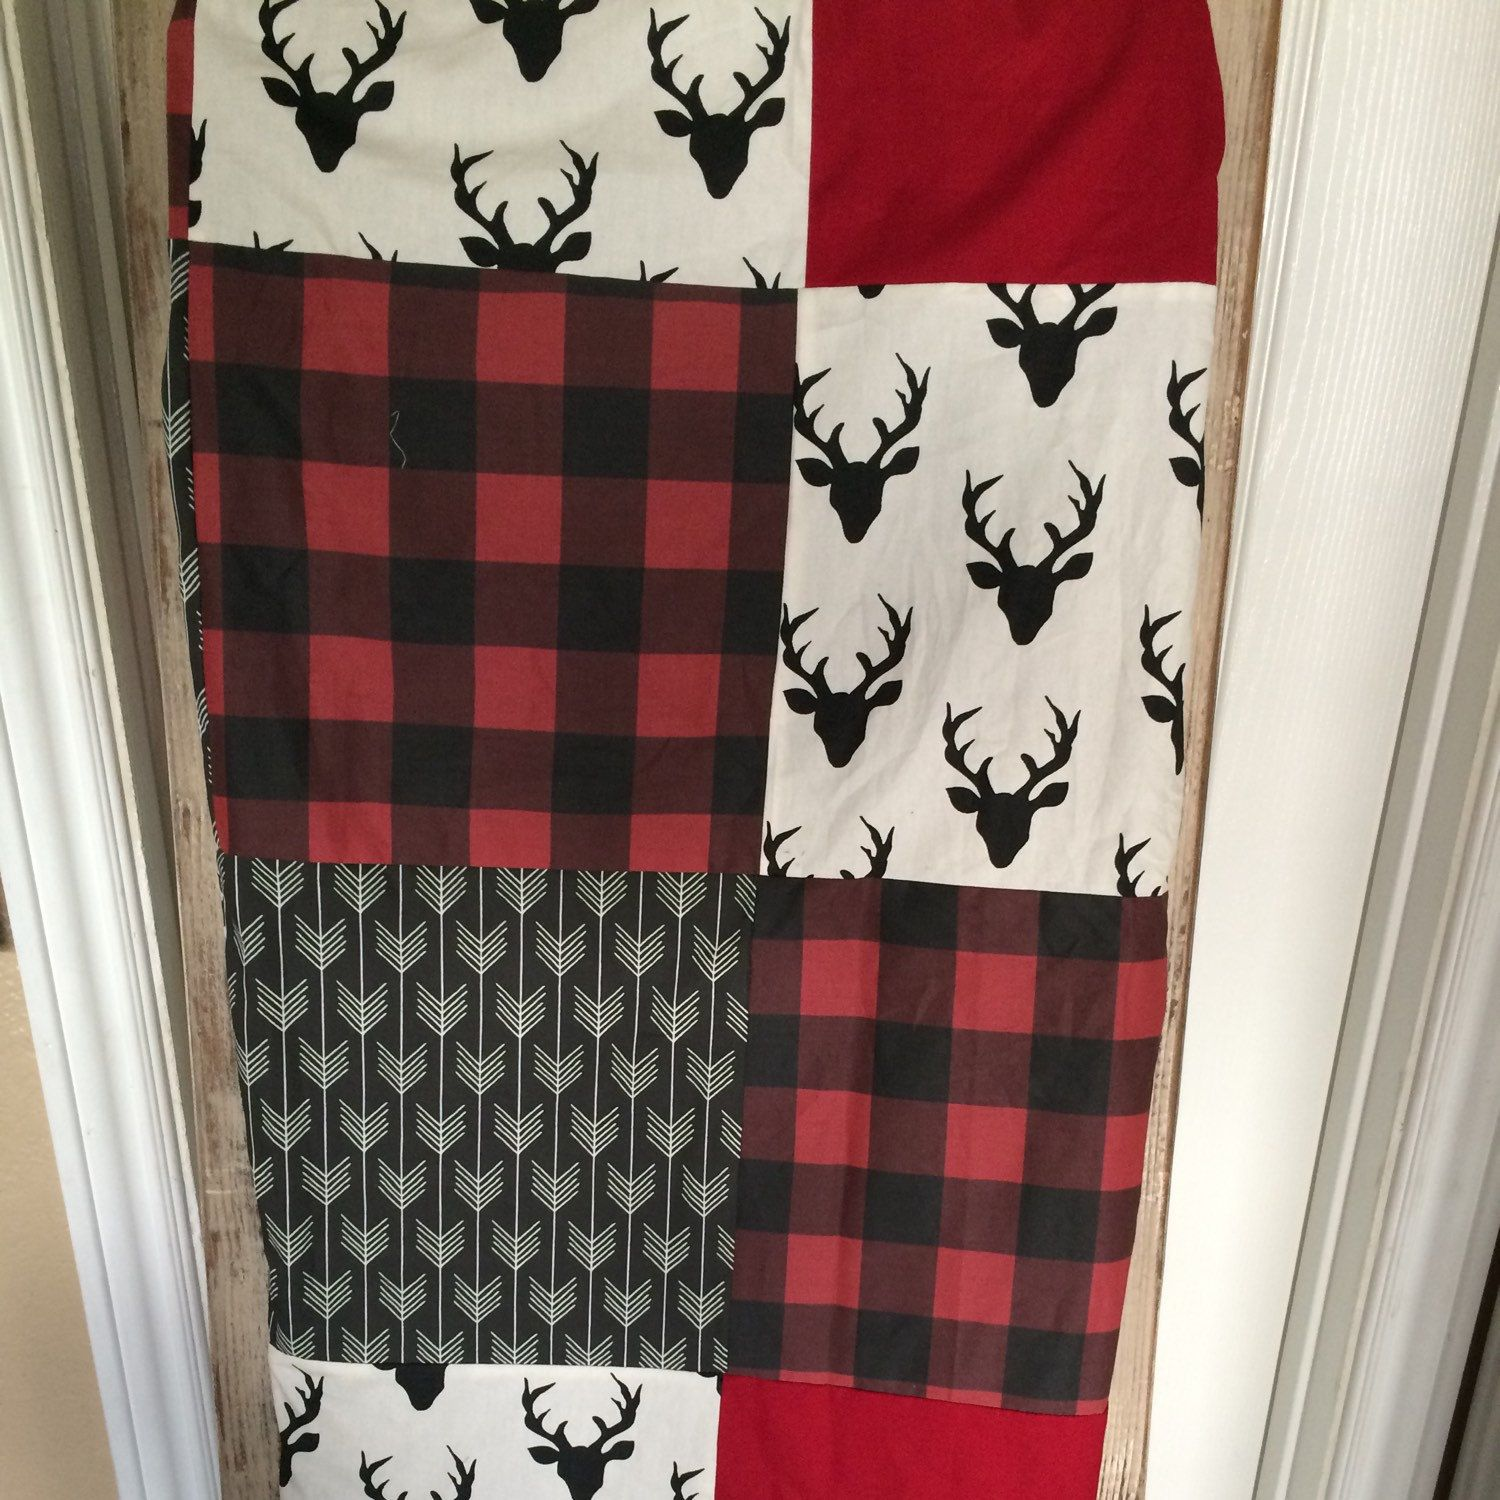 Custom Crib Bedding Deer Plaid Arrow in Red and Black